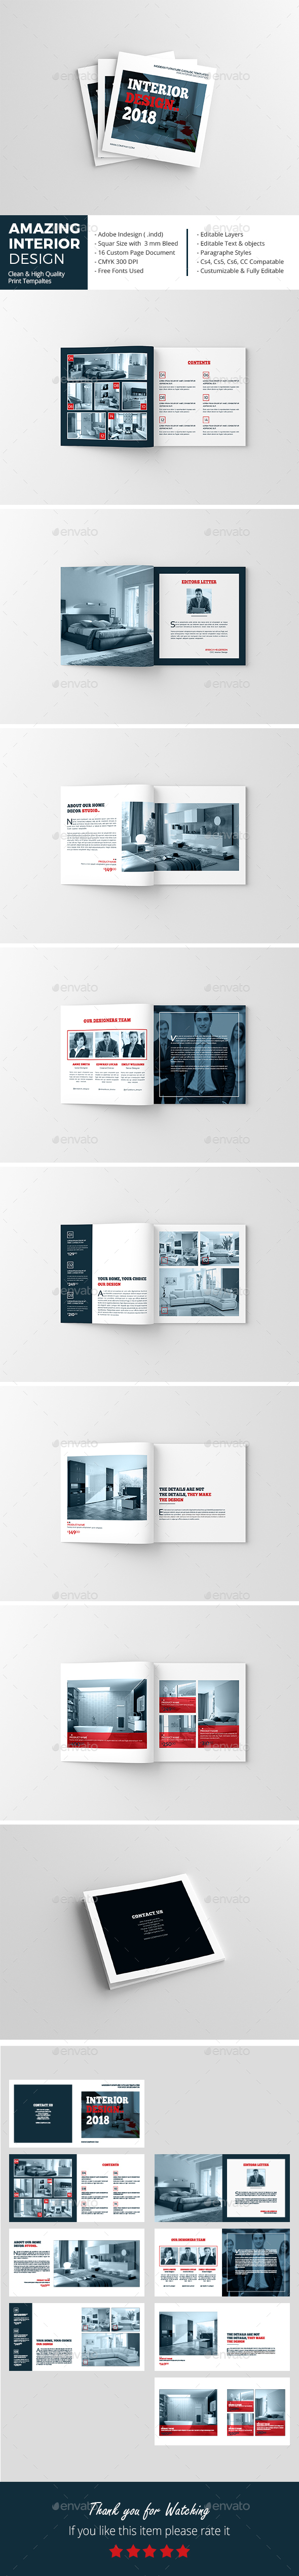 GraphicRiver Amazing Interior Design Brochure 20879383